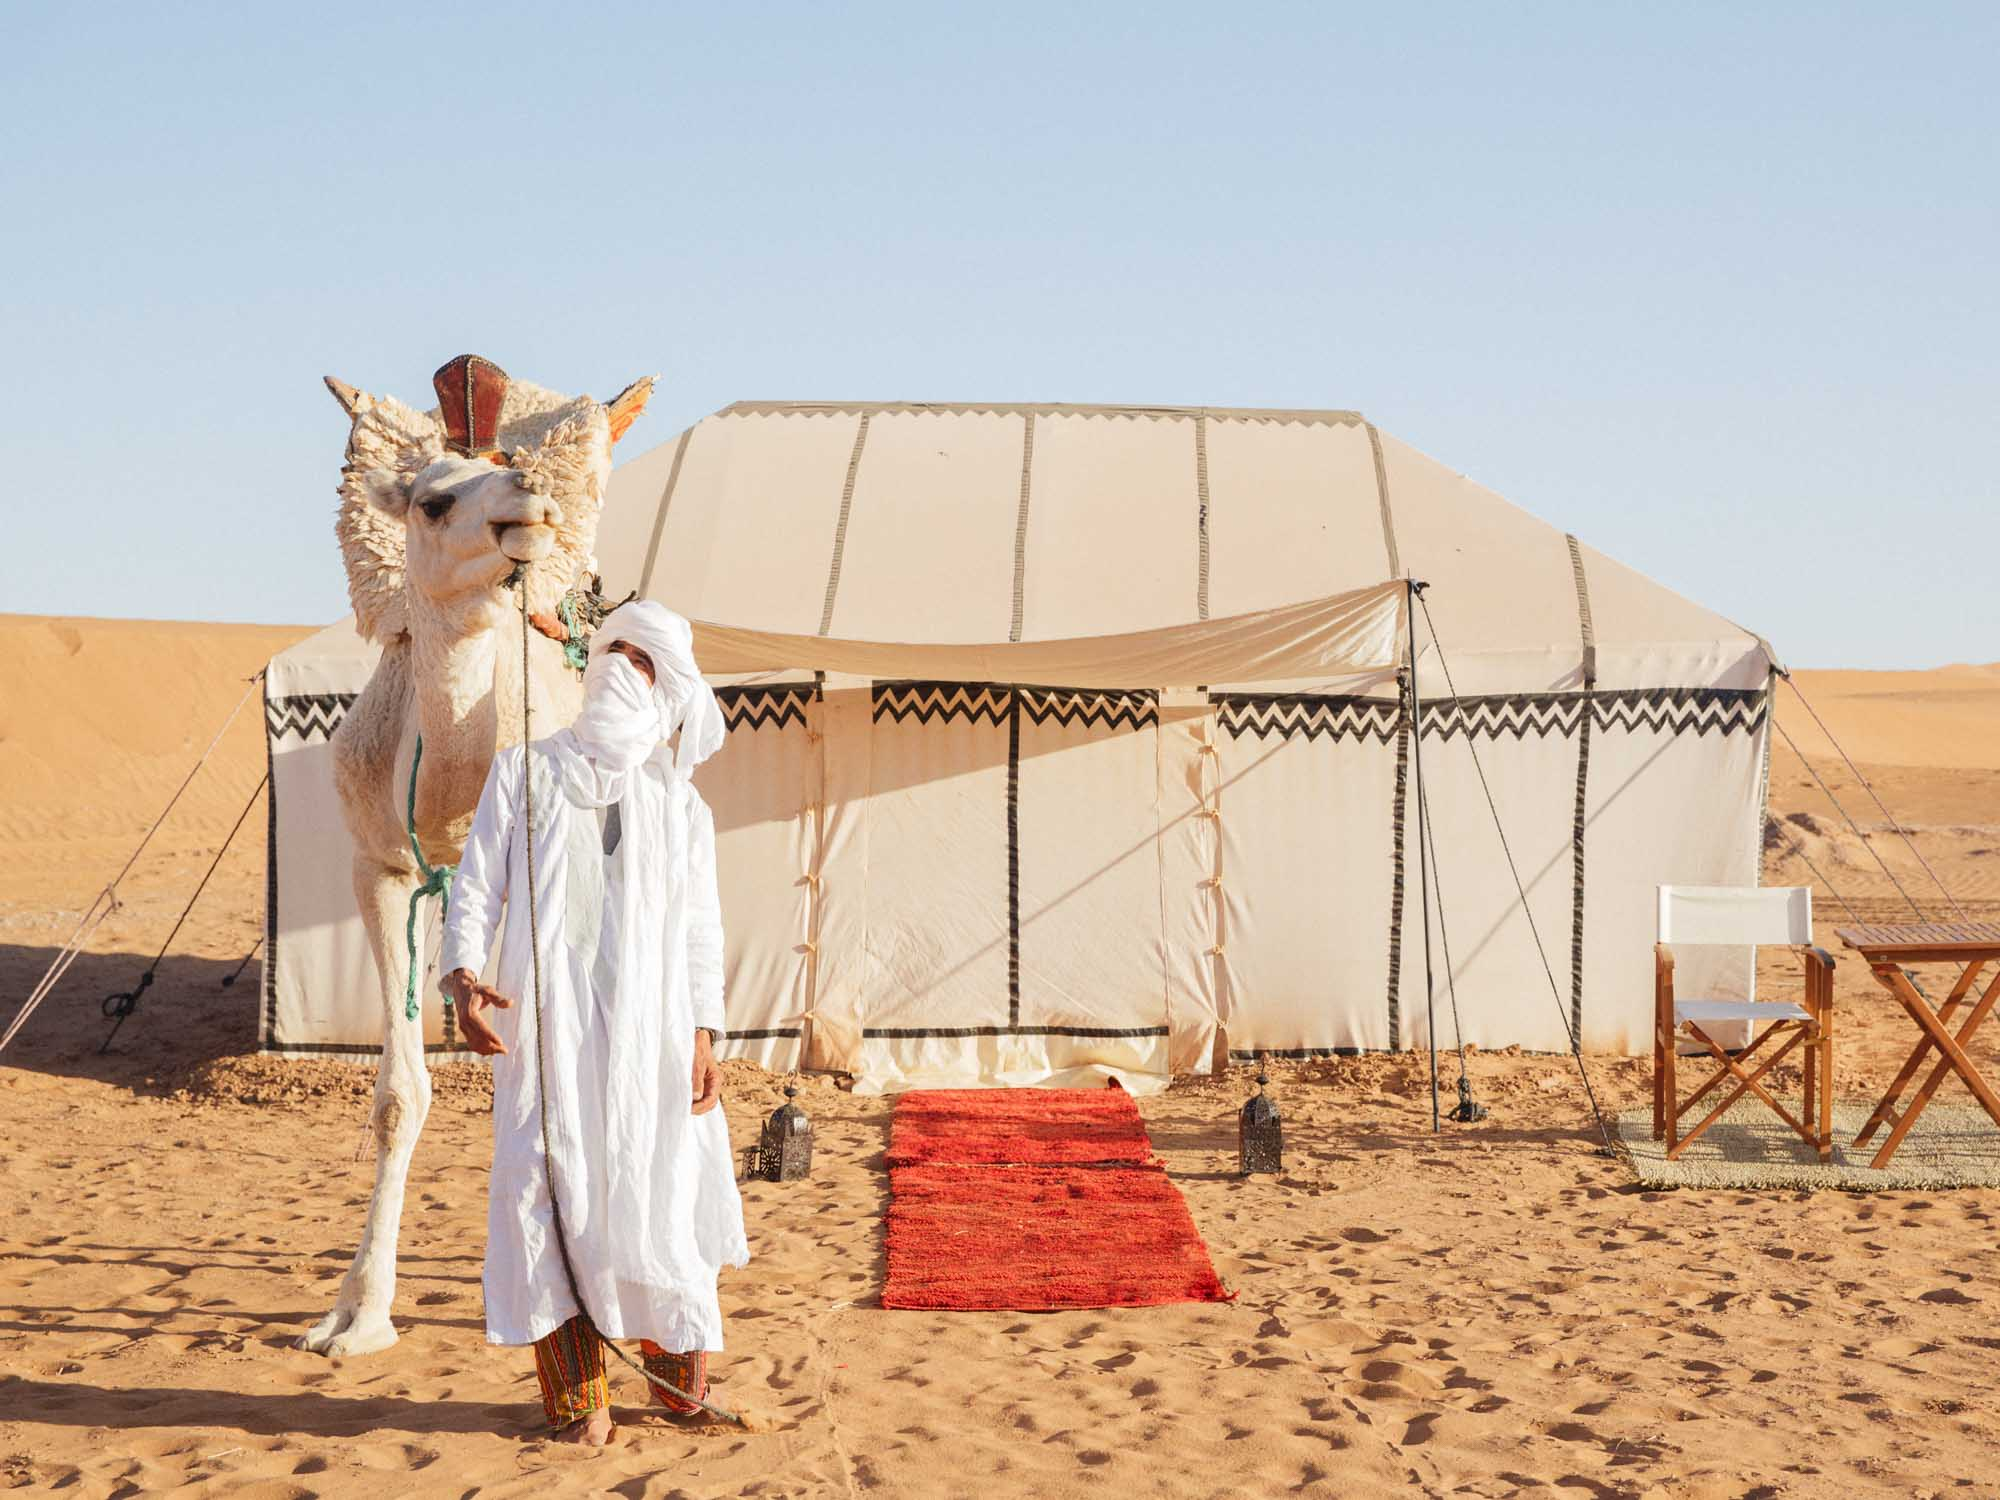 Berber Tour Guide With Camel at Luxury Camp in Morocco